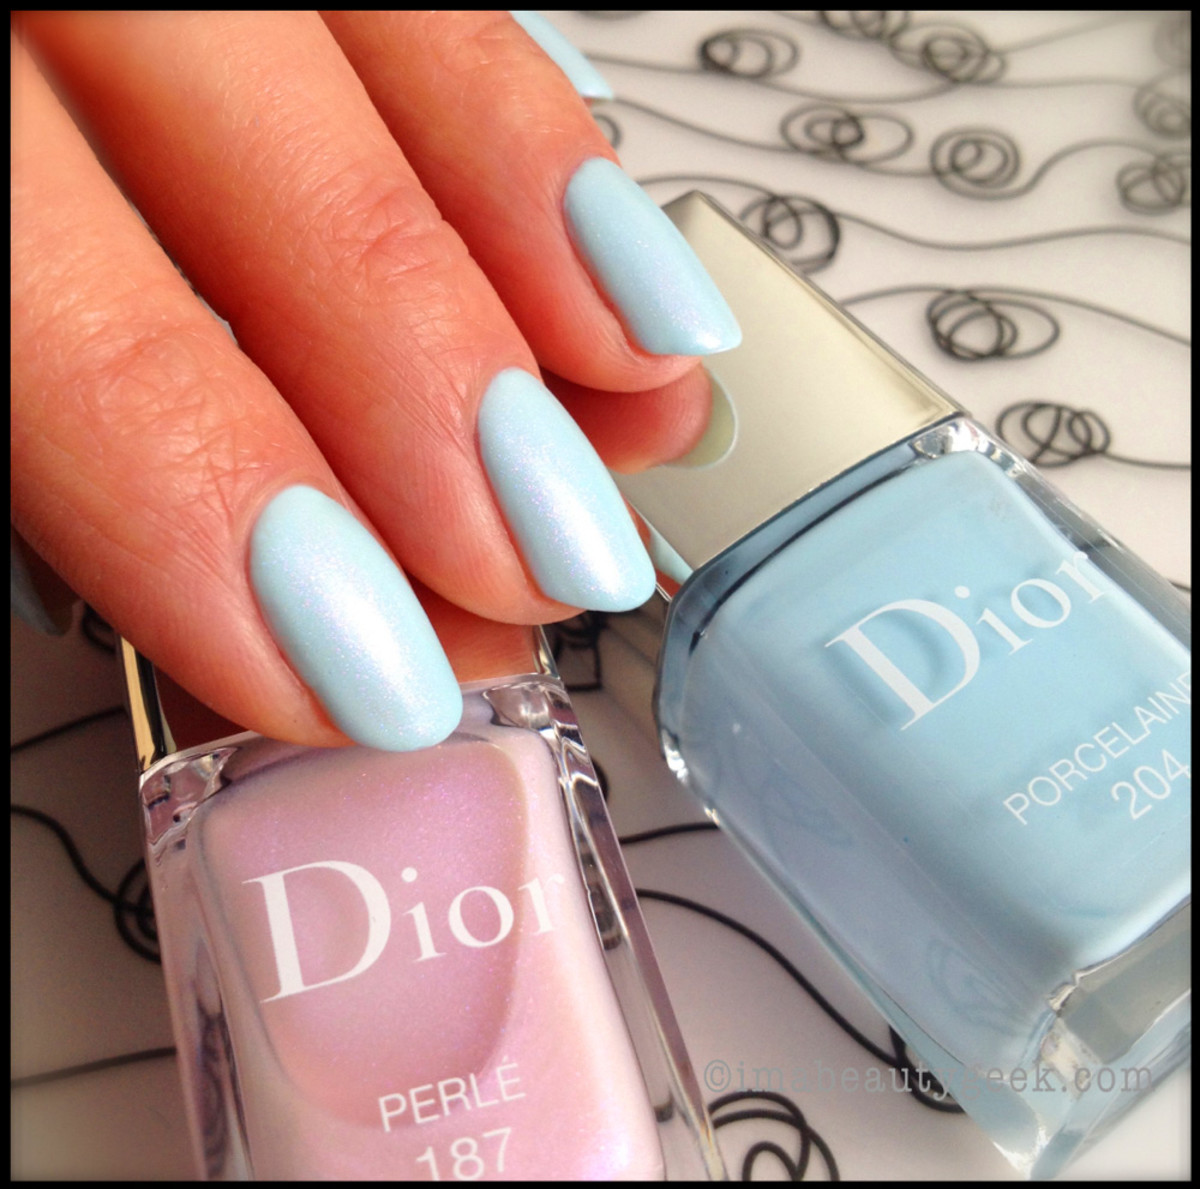 Dior Porcelain 204 with Perle 187_Dior Spring 2014 nails_Trianon edition